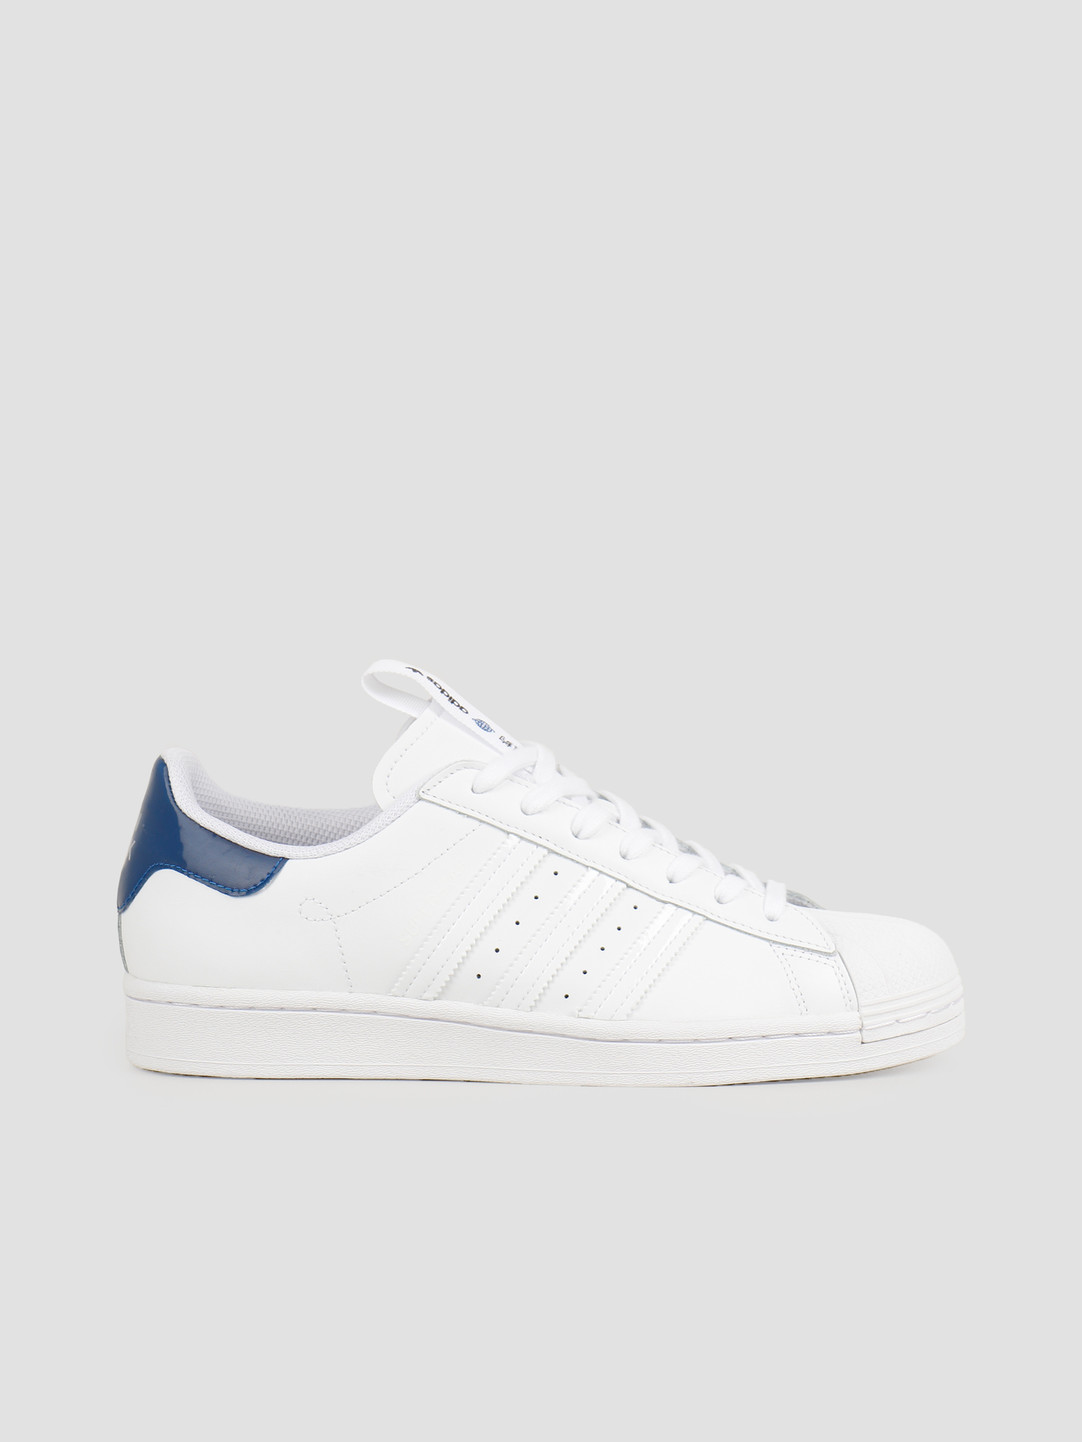 adidas adidas Superstar Footwear White Core Royal Core Black FW2803